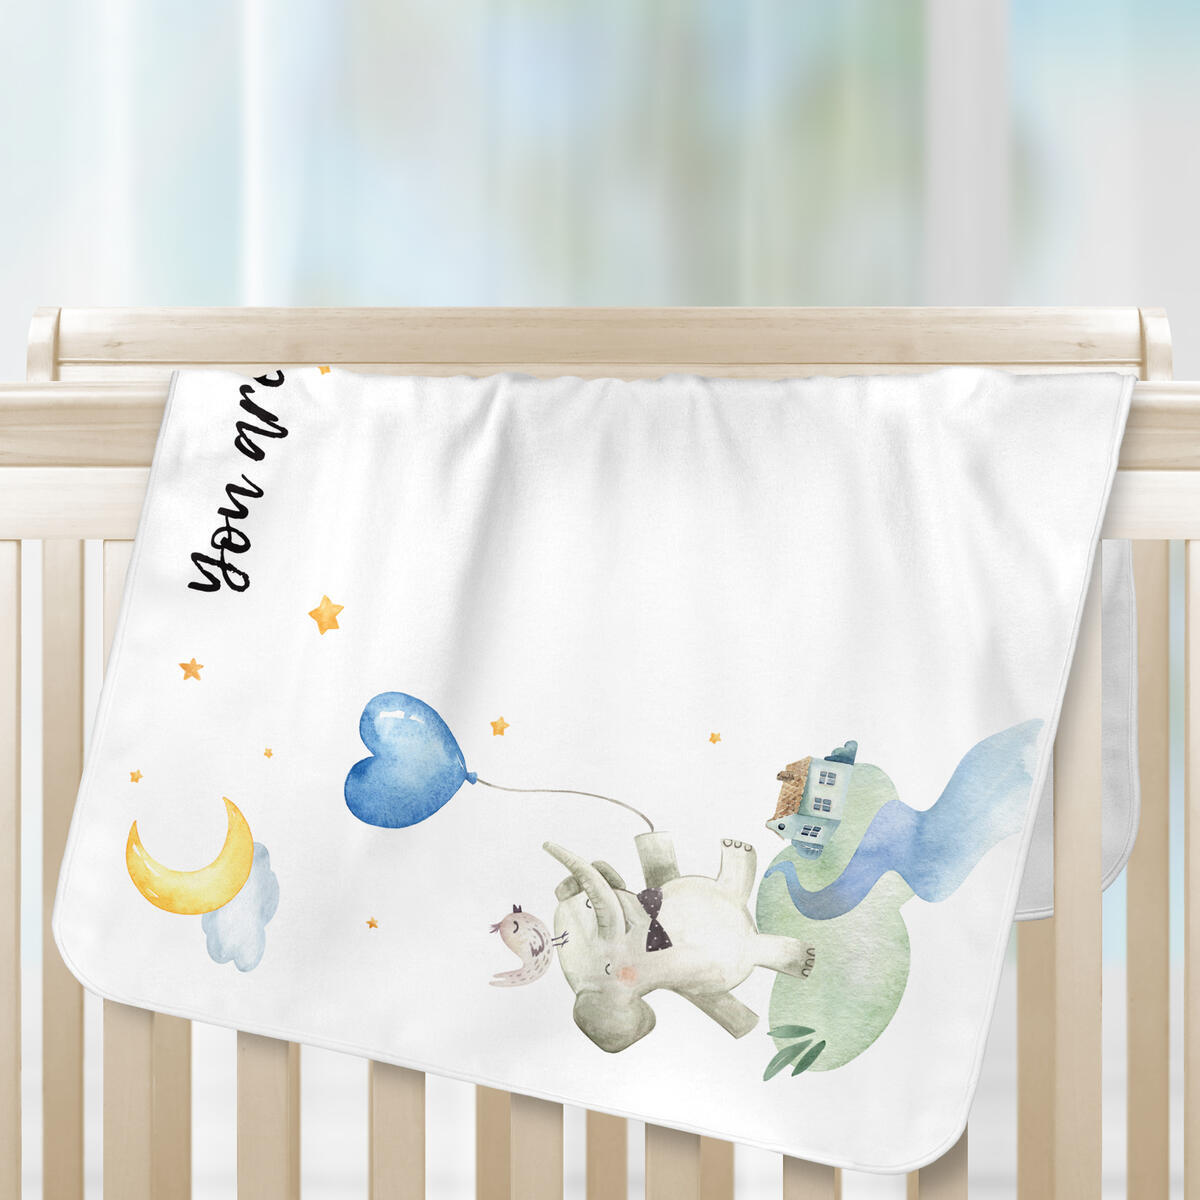 Monthly Baby Milestone Blanket Boy and Girl Luka&Lily, Personalized Blanket Newborn Baby Shower, Plush Elephant Month Blanket for Nursery, Bandana Bib +3 Frames 60